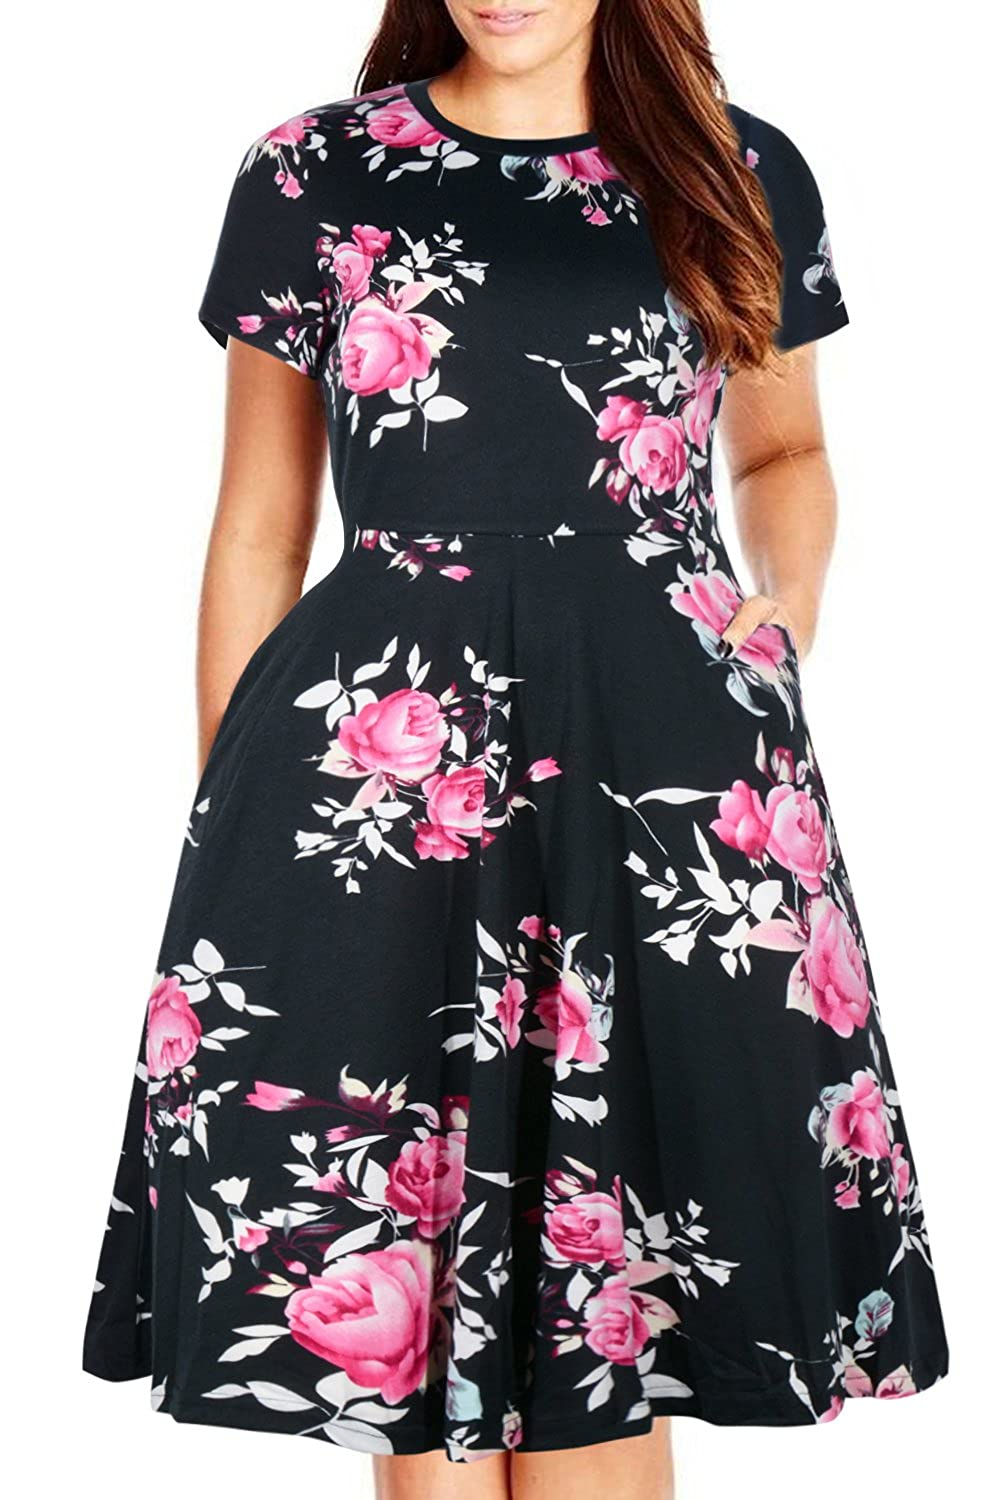 691c6148c Amazon.com: Nemidor Women's Round Neck Summer Casual Plus Size Fit and  Flare Midi Dress with Pocket: Clothing